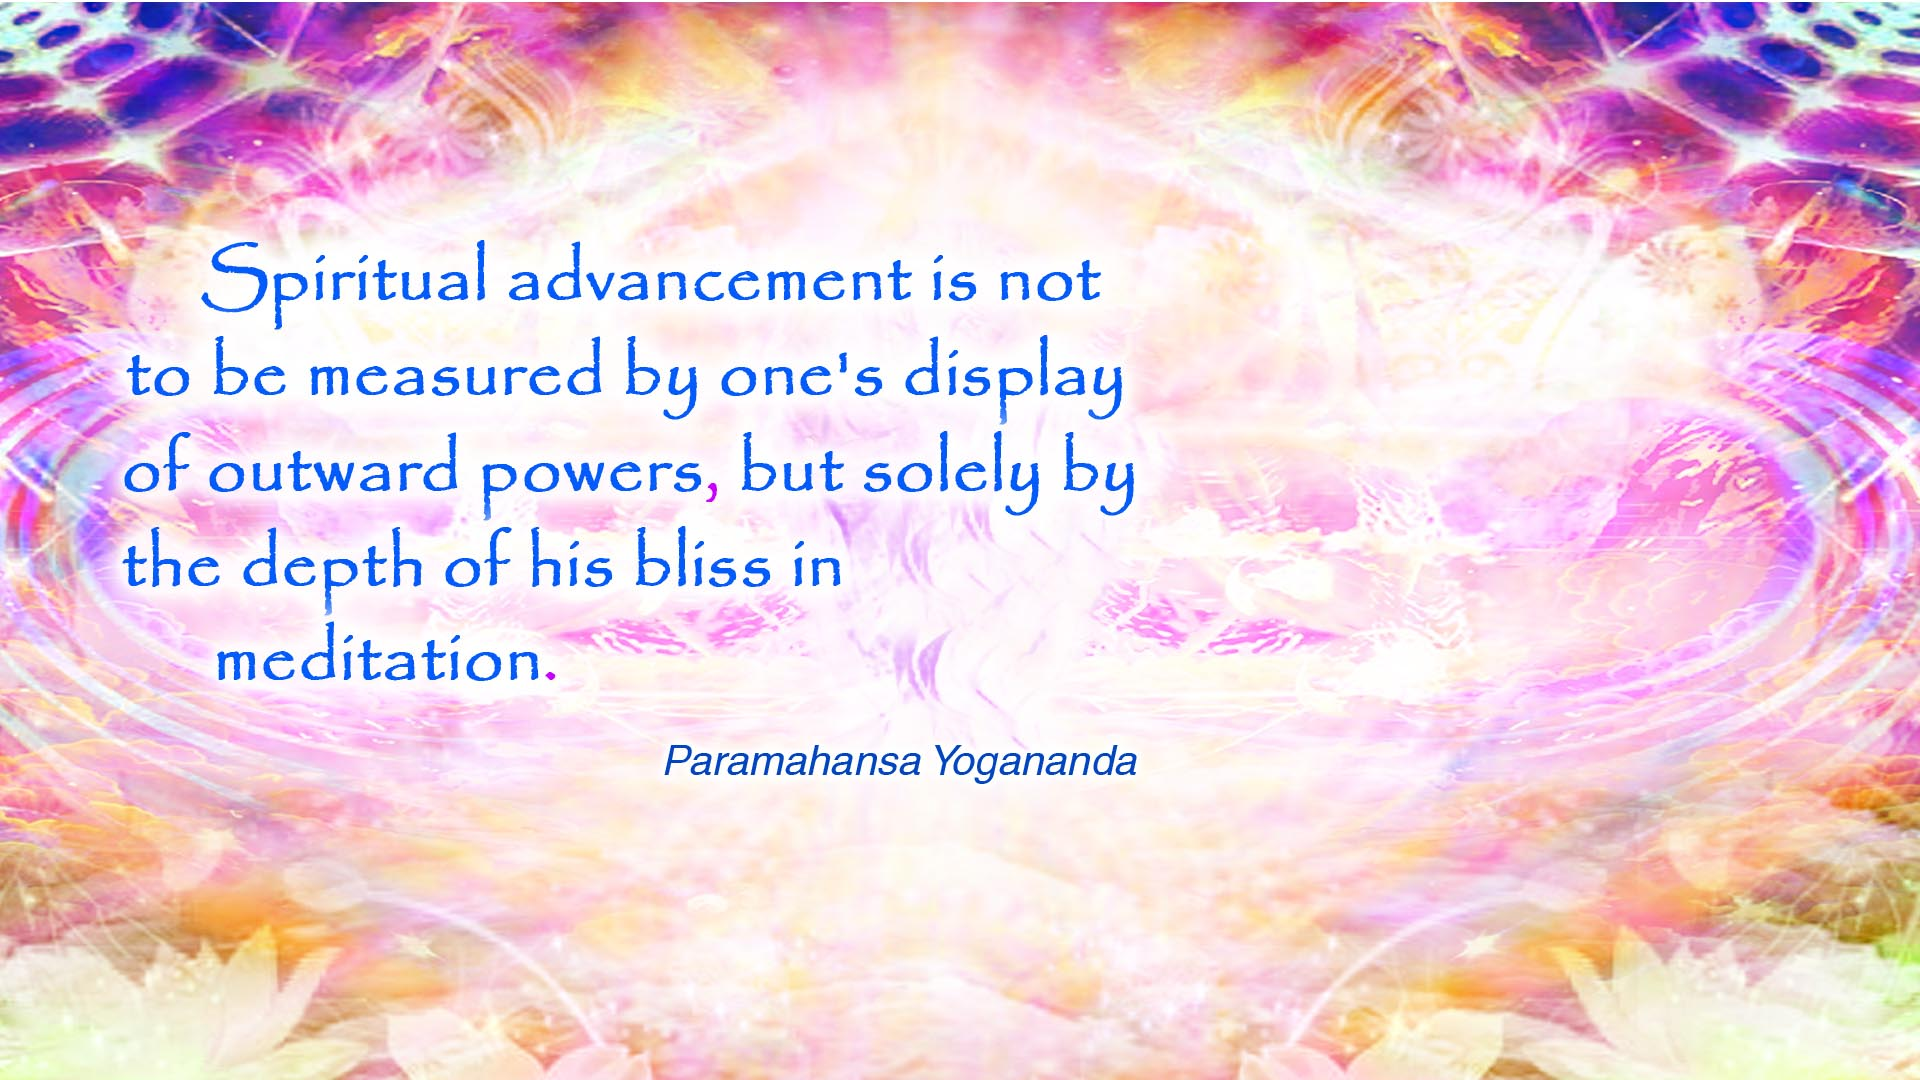 Yogananda spiritual advancement wallpaper